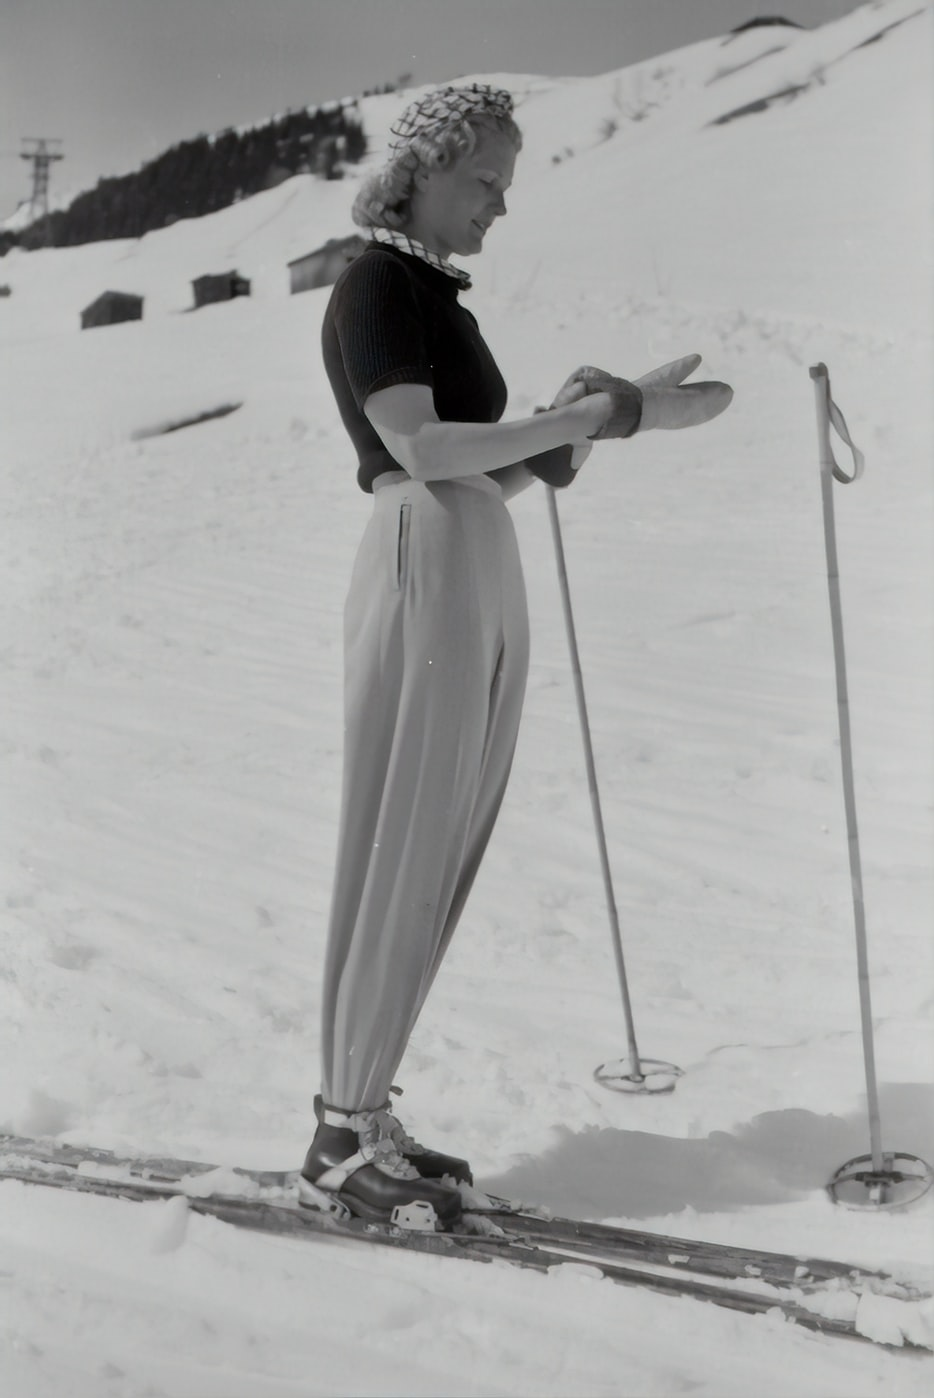 greyscale photography of woman using snowboard skis 1940